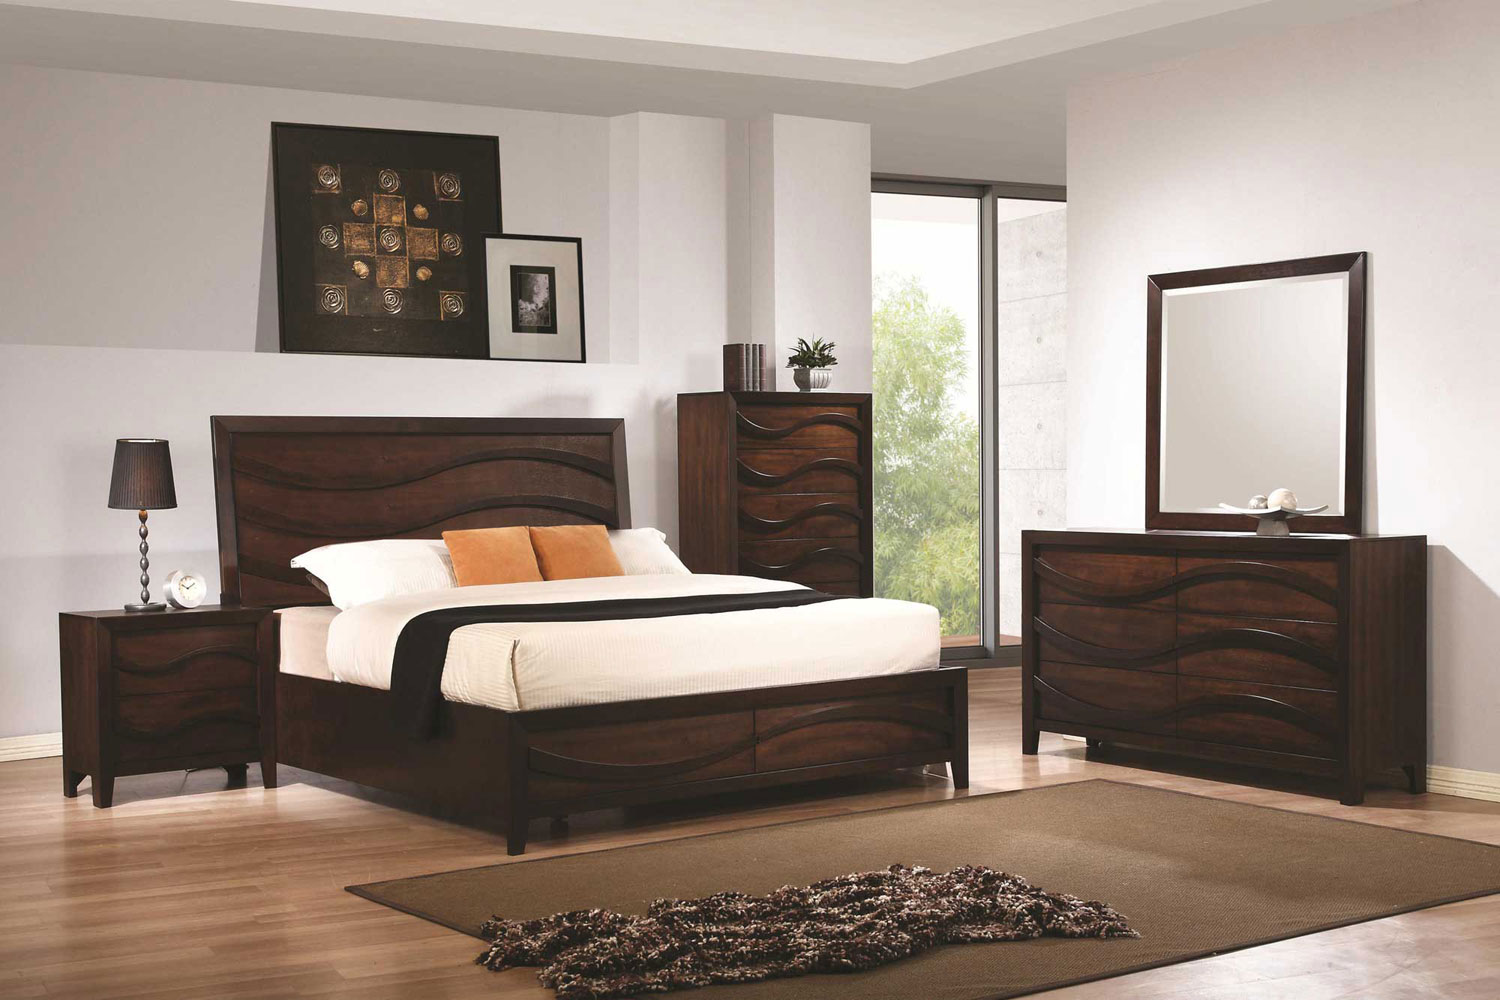 Coaster Loncar Bedroom Collection - Java Oak